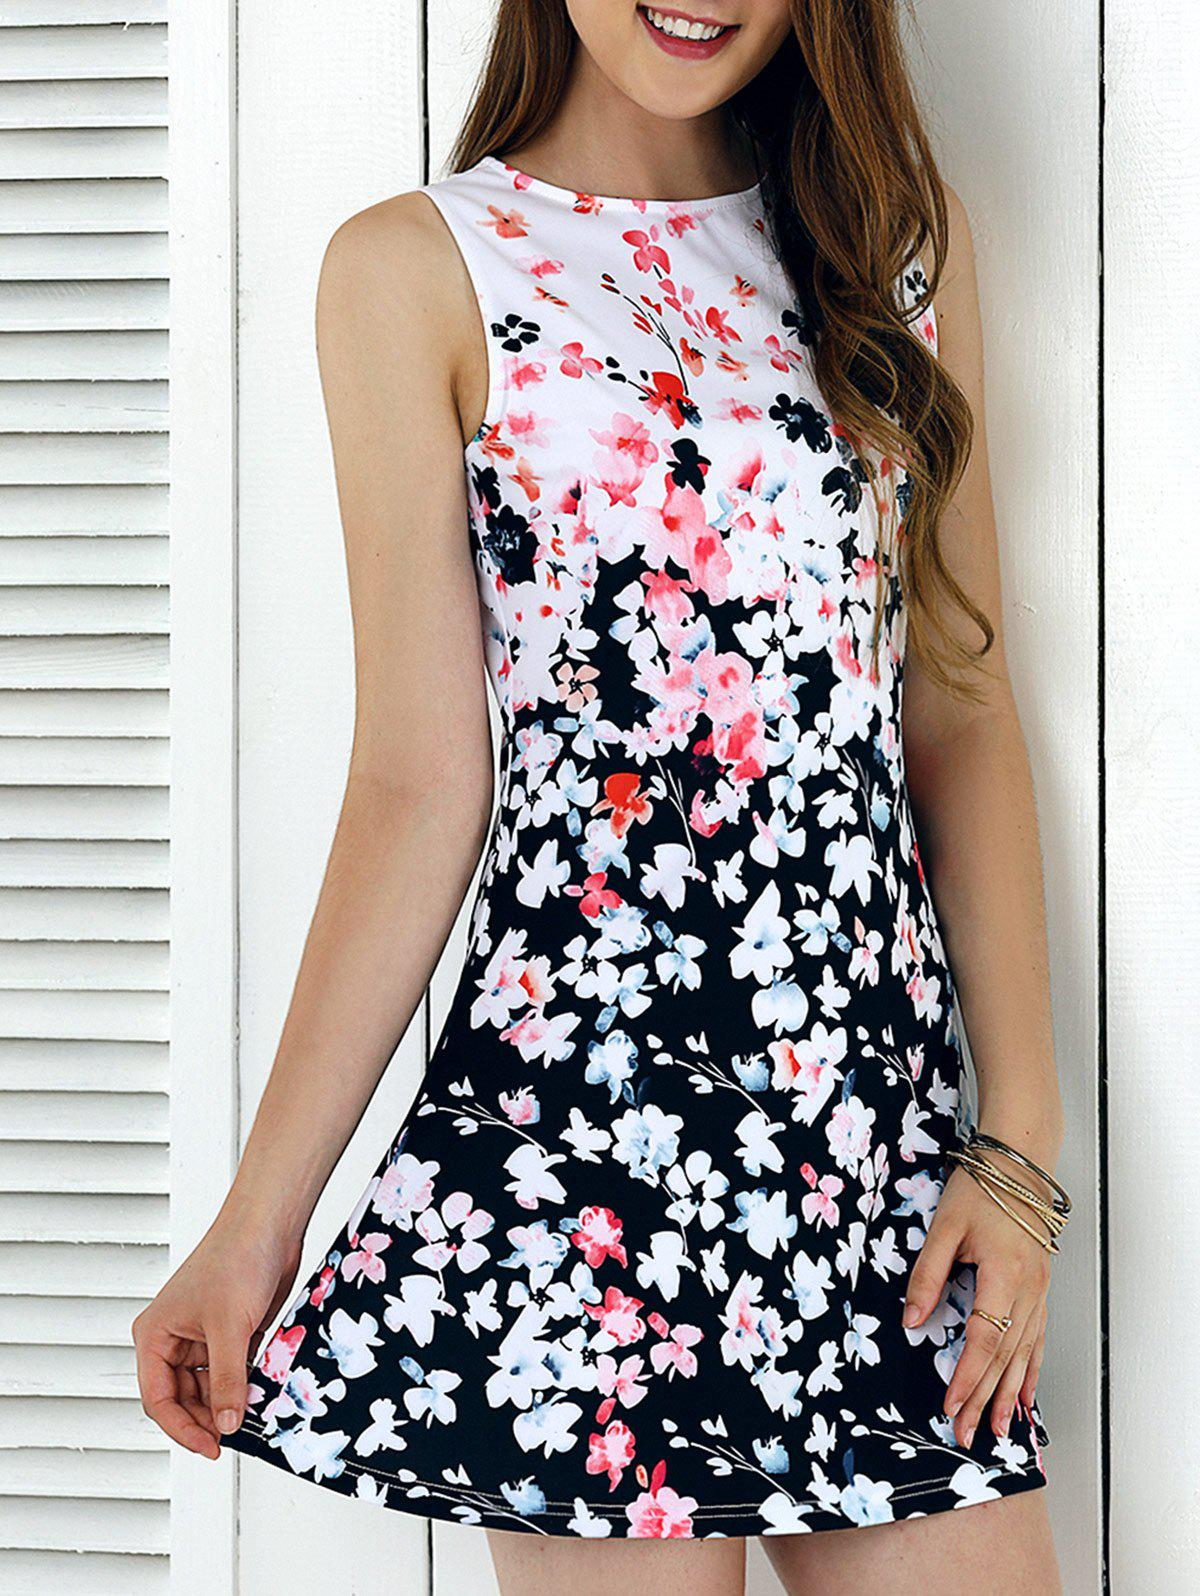 Elegant Sleeveless Tiny Floral Print Mini Dress - WHITE/BLACK XL